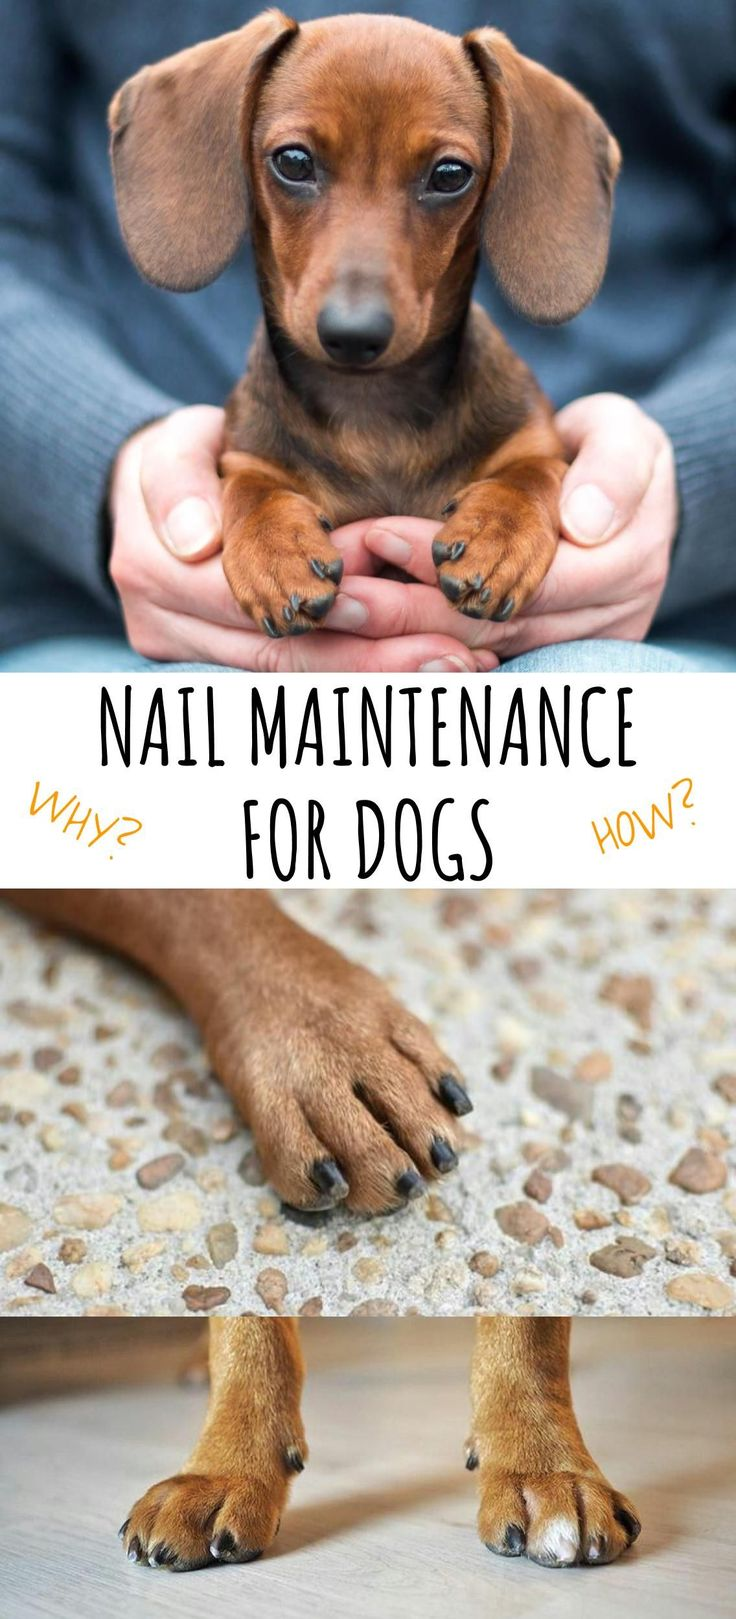 Nail Maintenance For Dogs - How to Take Care of Your Dog's Nails